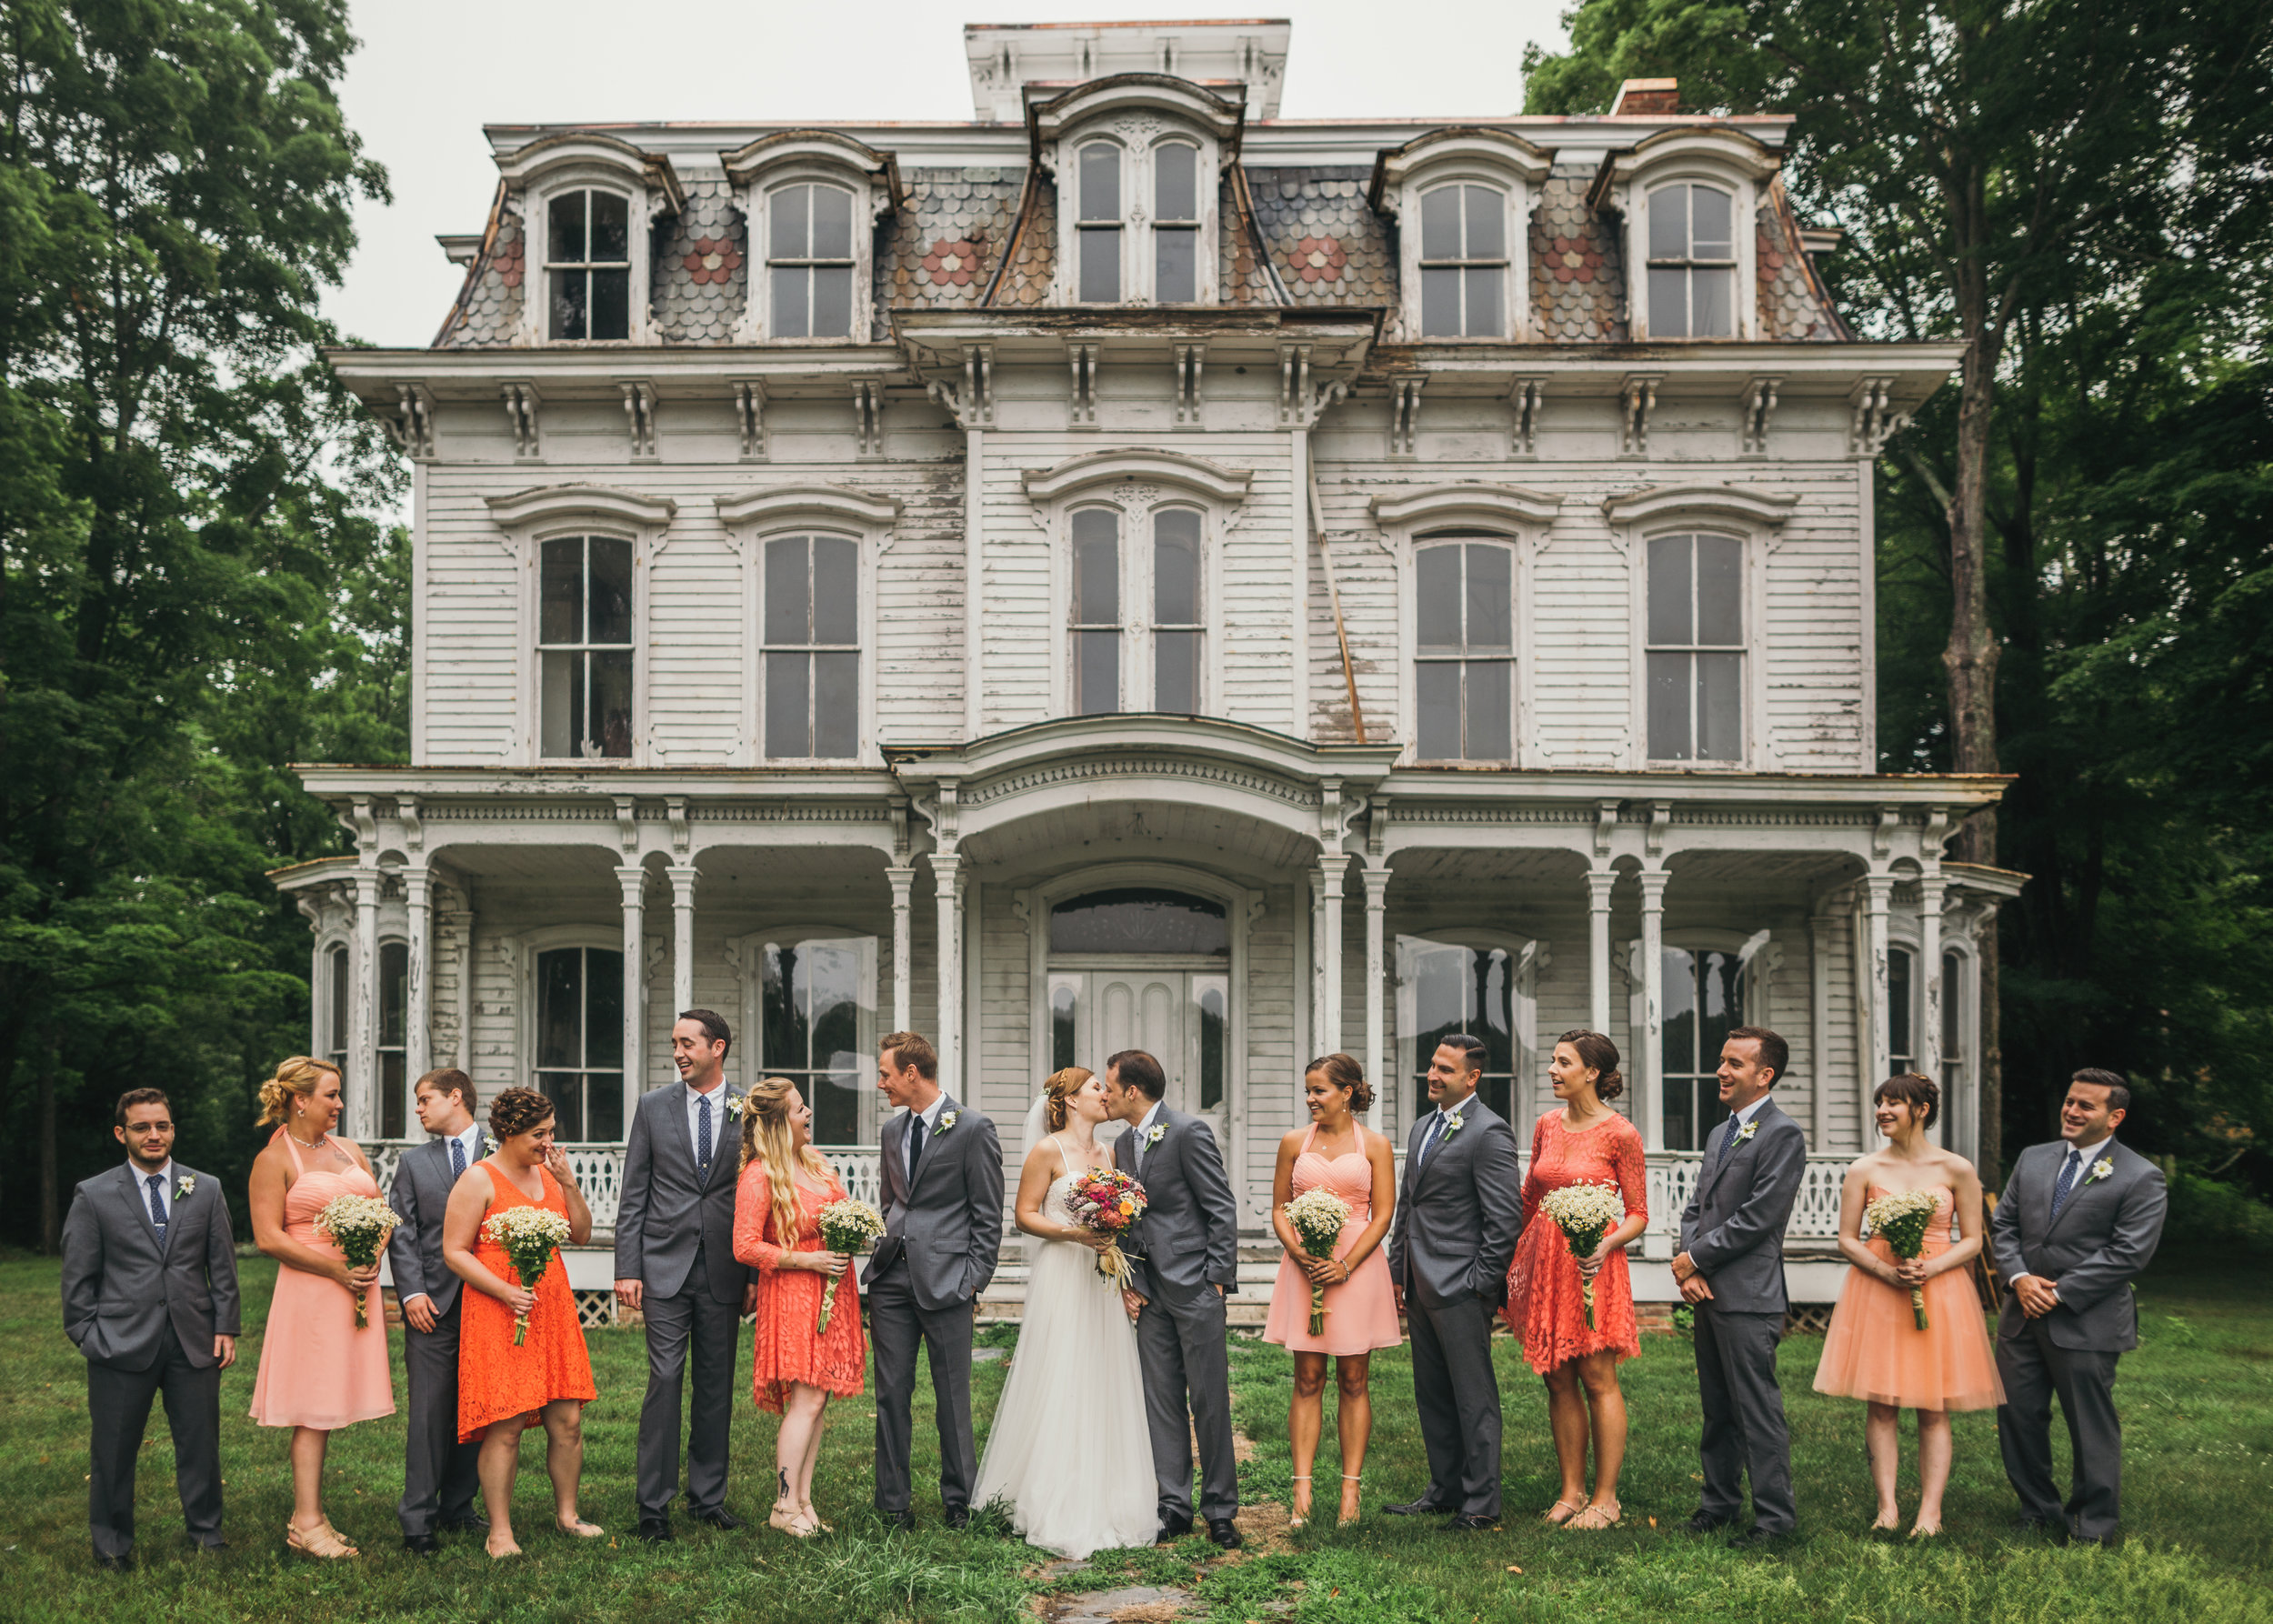 Wedding Party portrait in front of a beautiful historic building at Waterloo Village